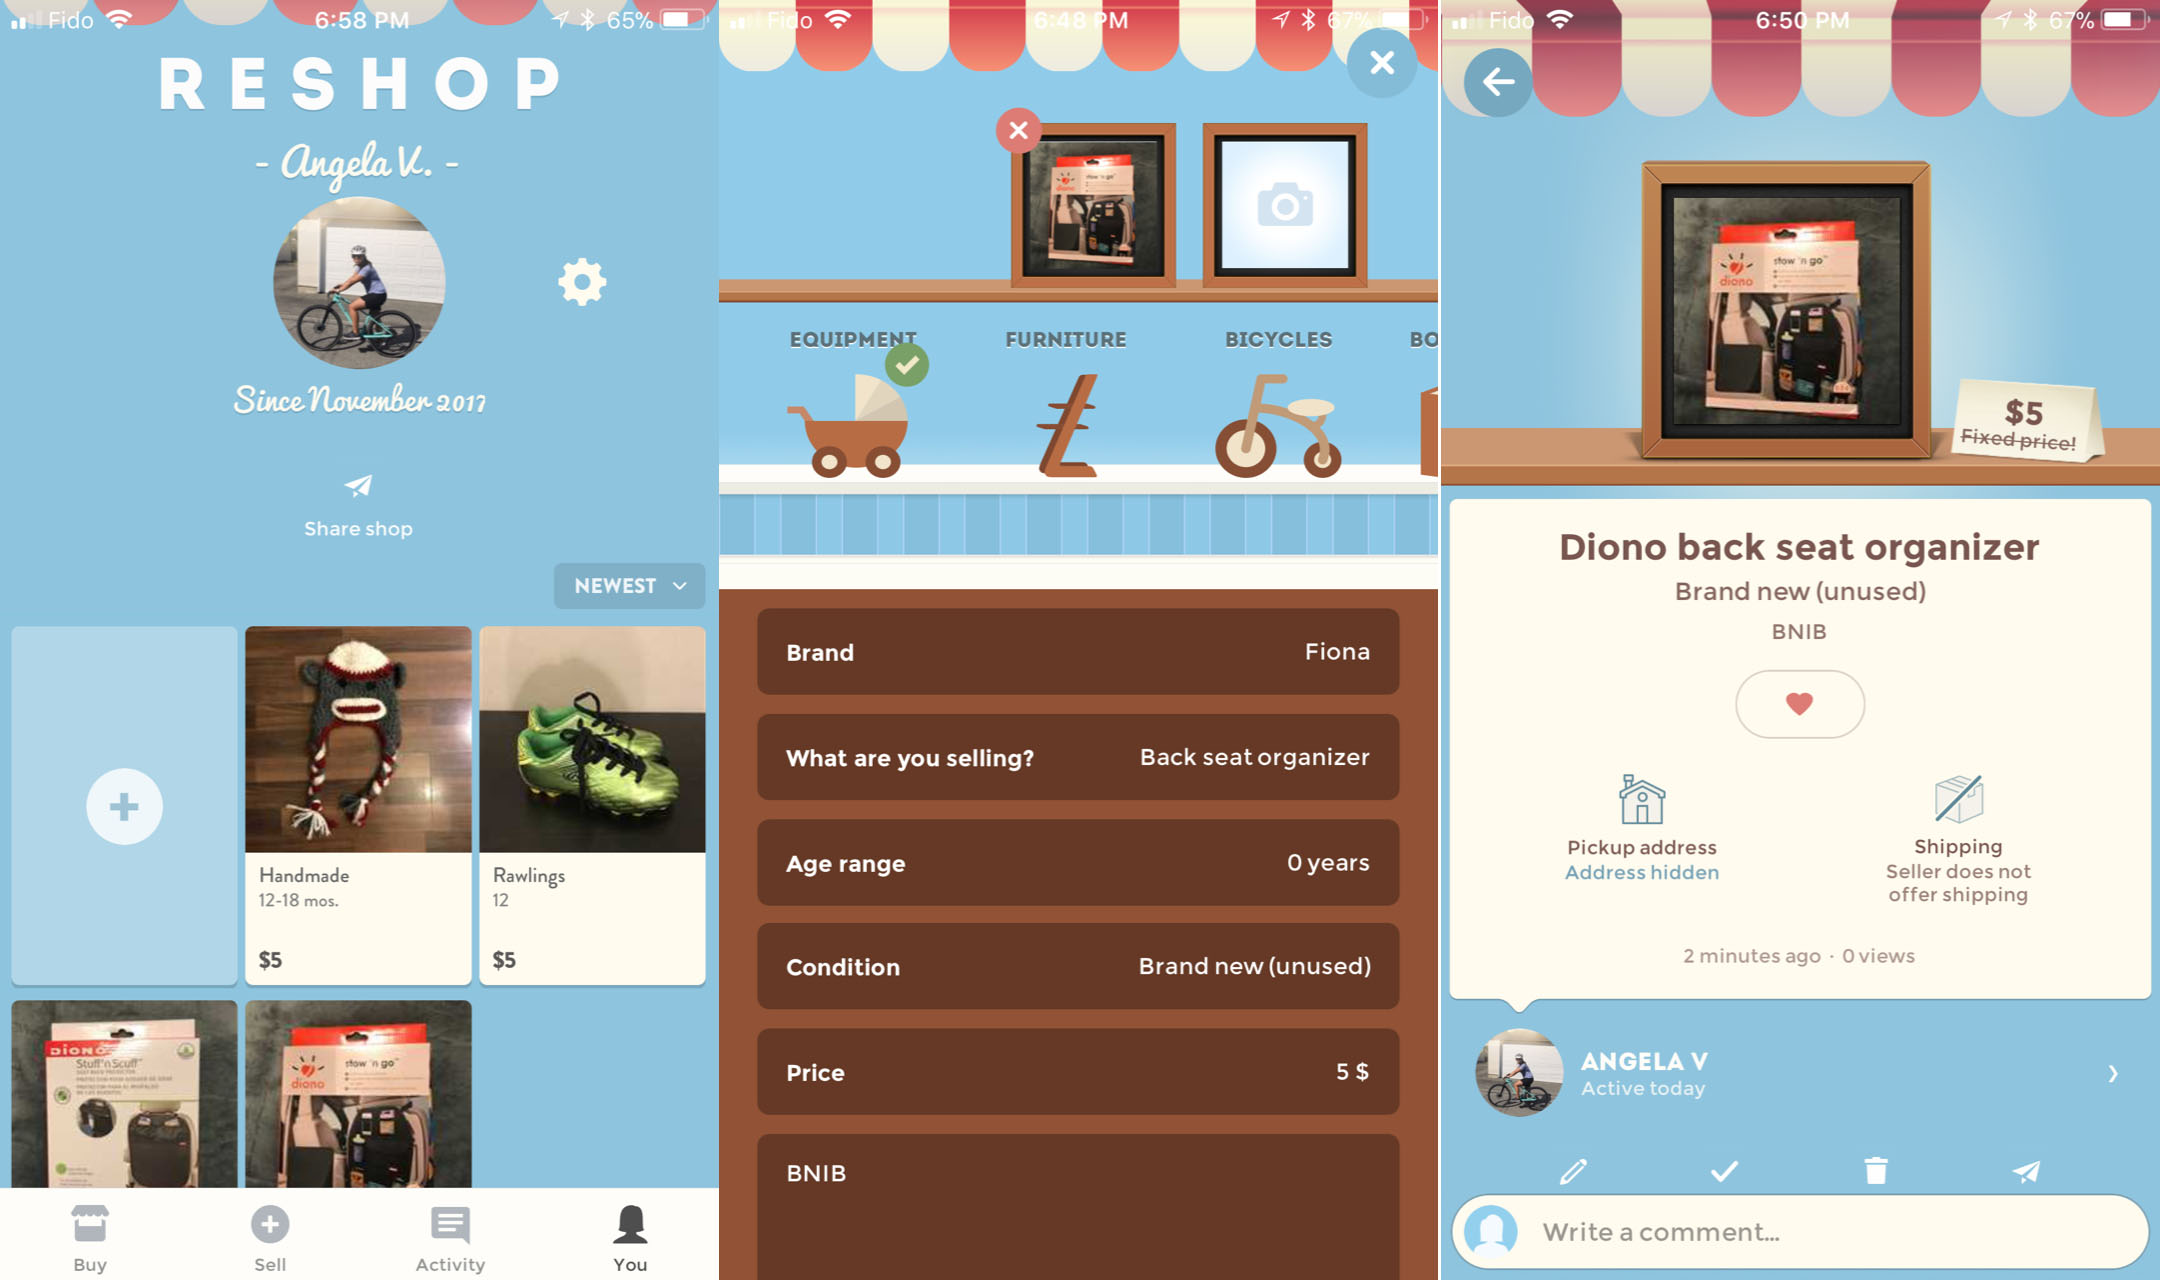 Easily sell your pre-loved kid stuff with Reshopper App